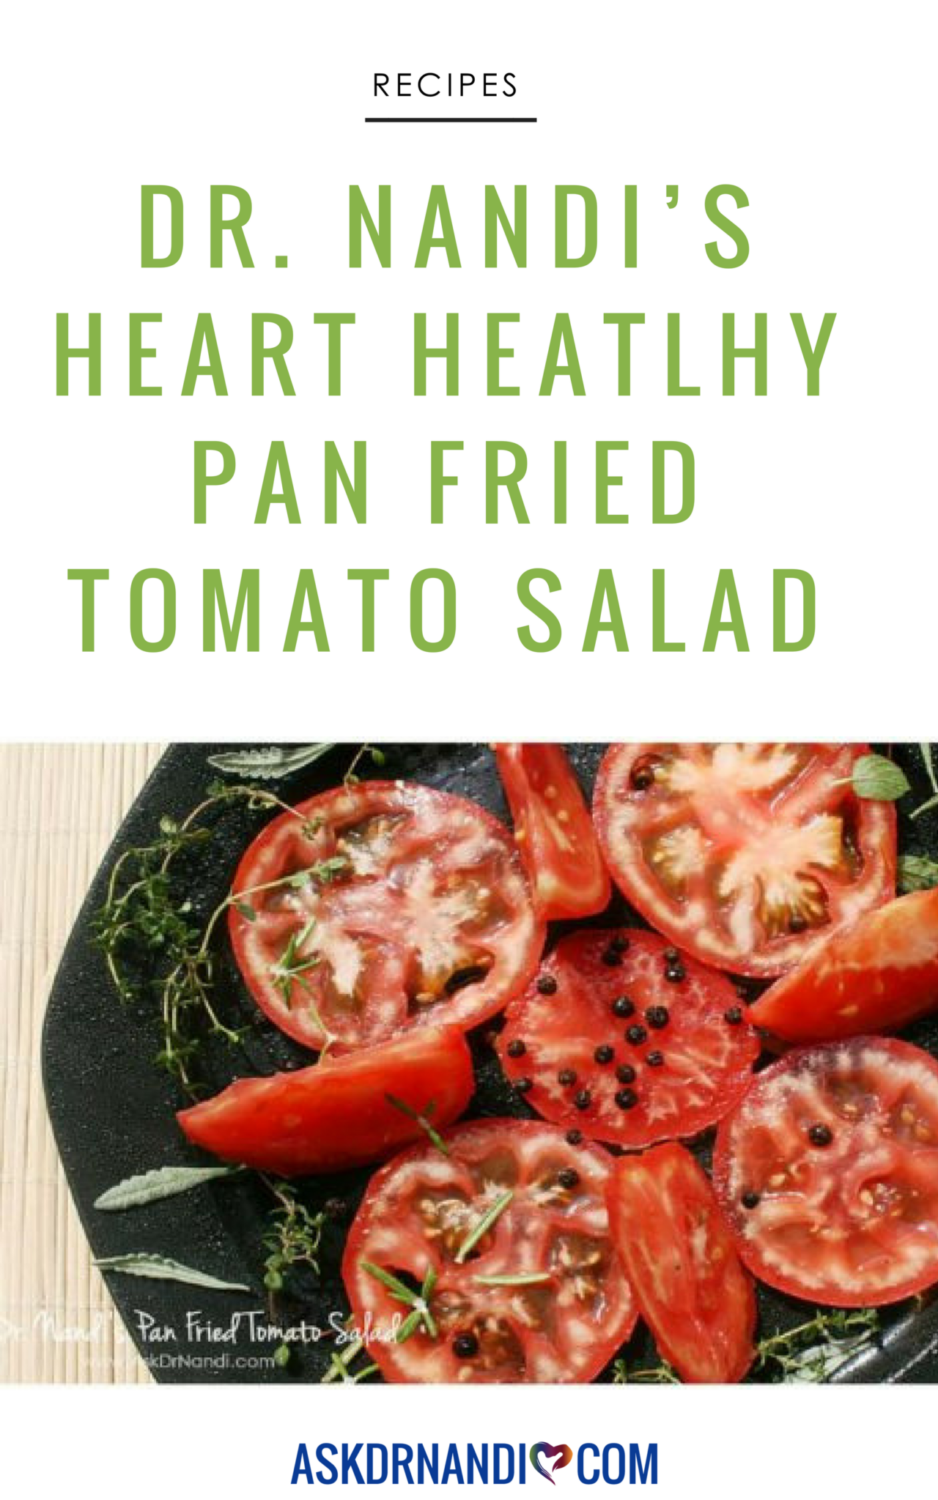 Here\'s An Amazing Pan Fried Tomato Salad by Dr. Nandi!